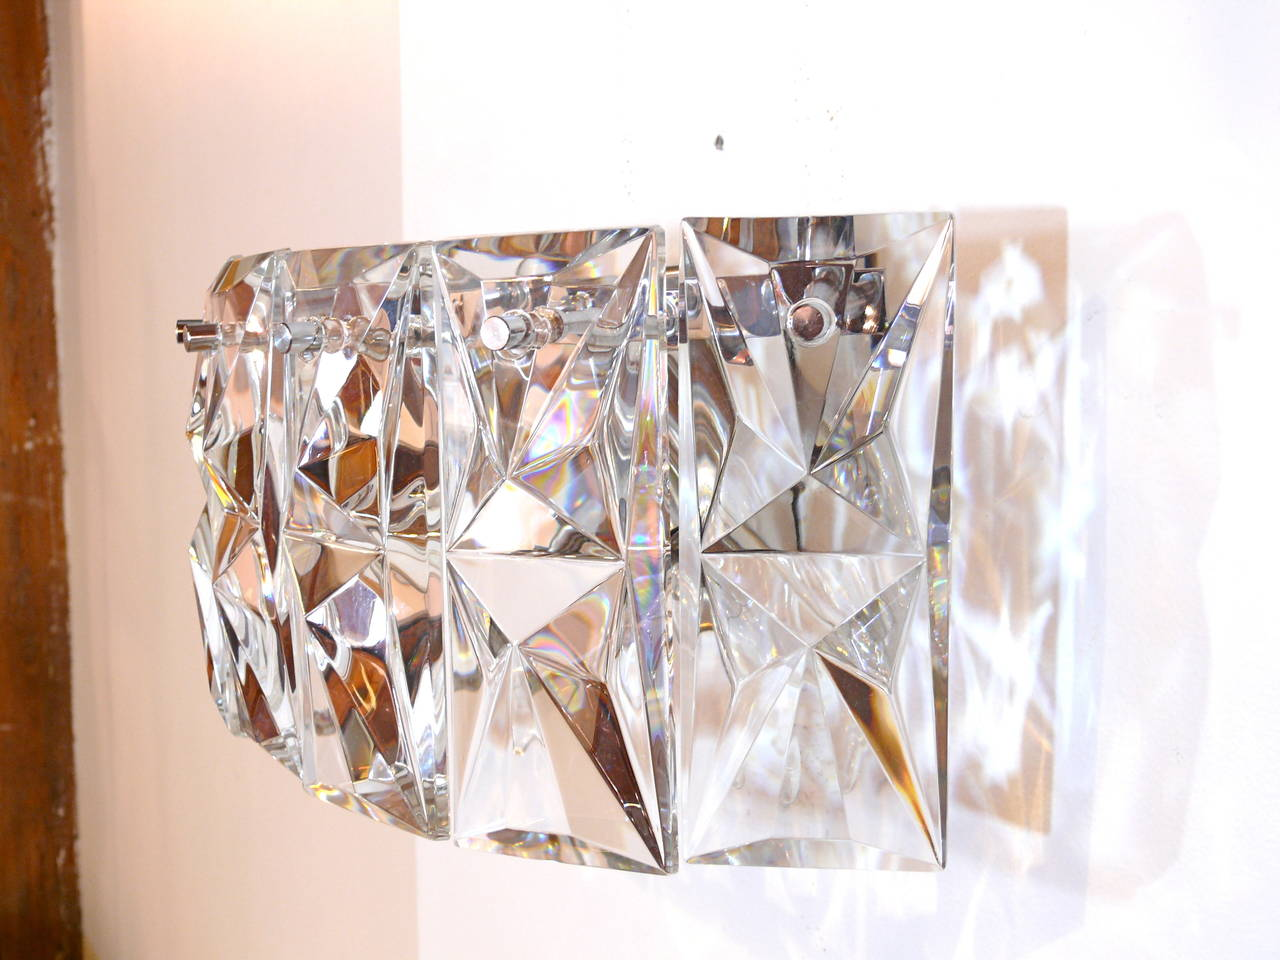 Pair of Prismatic Glass Sconces by Kindeley 8